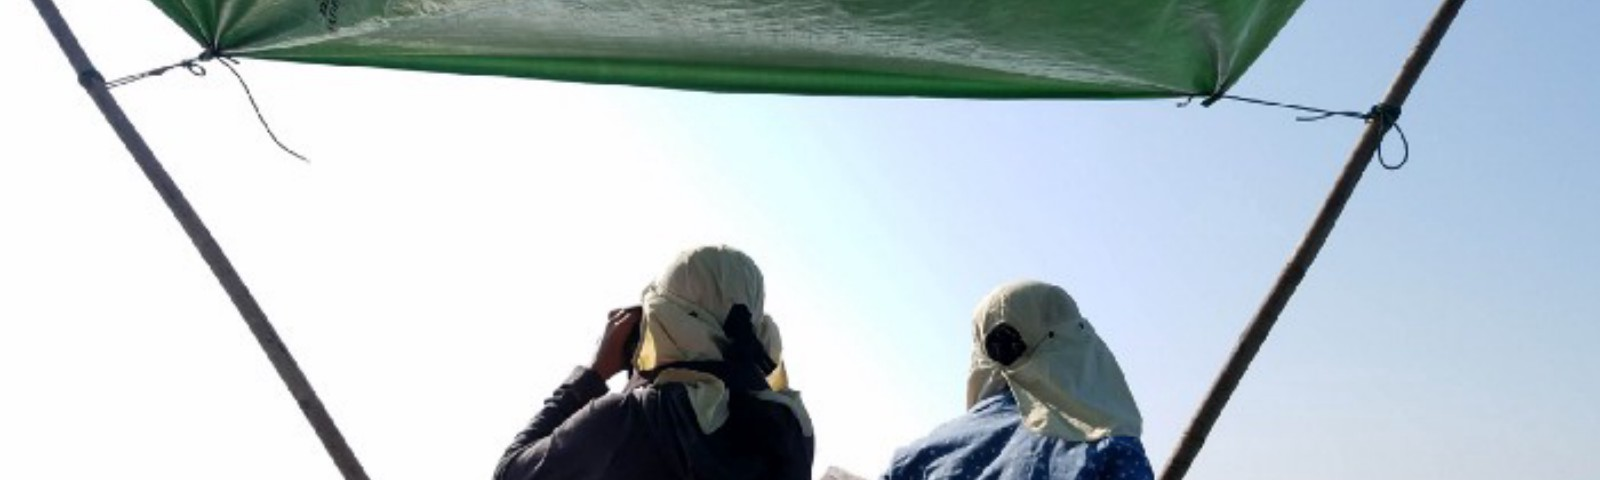 Two young researchers holding binoculars and sitting in the bow of a boat, scanning the sea for dolphins and porpoises